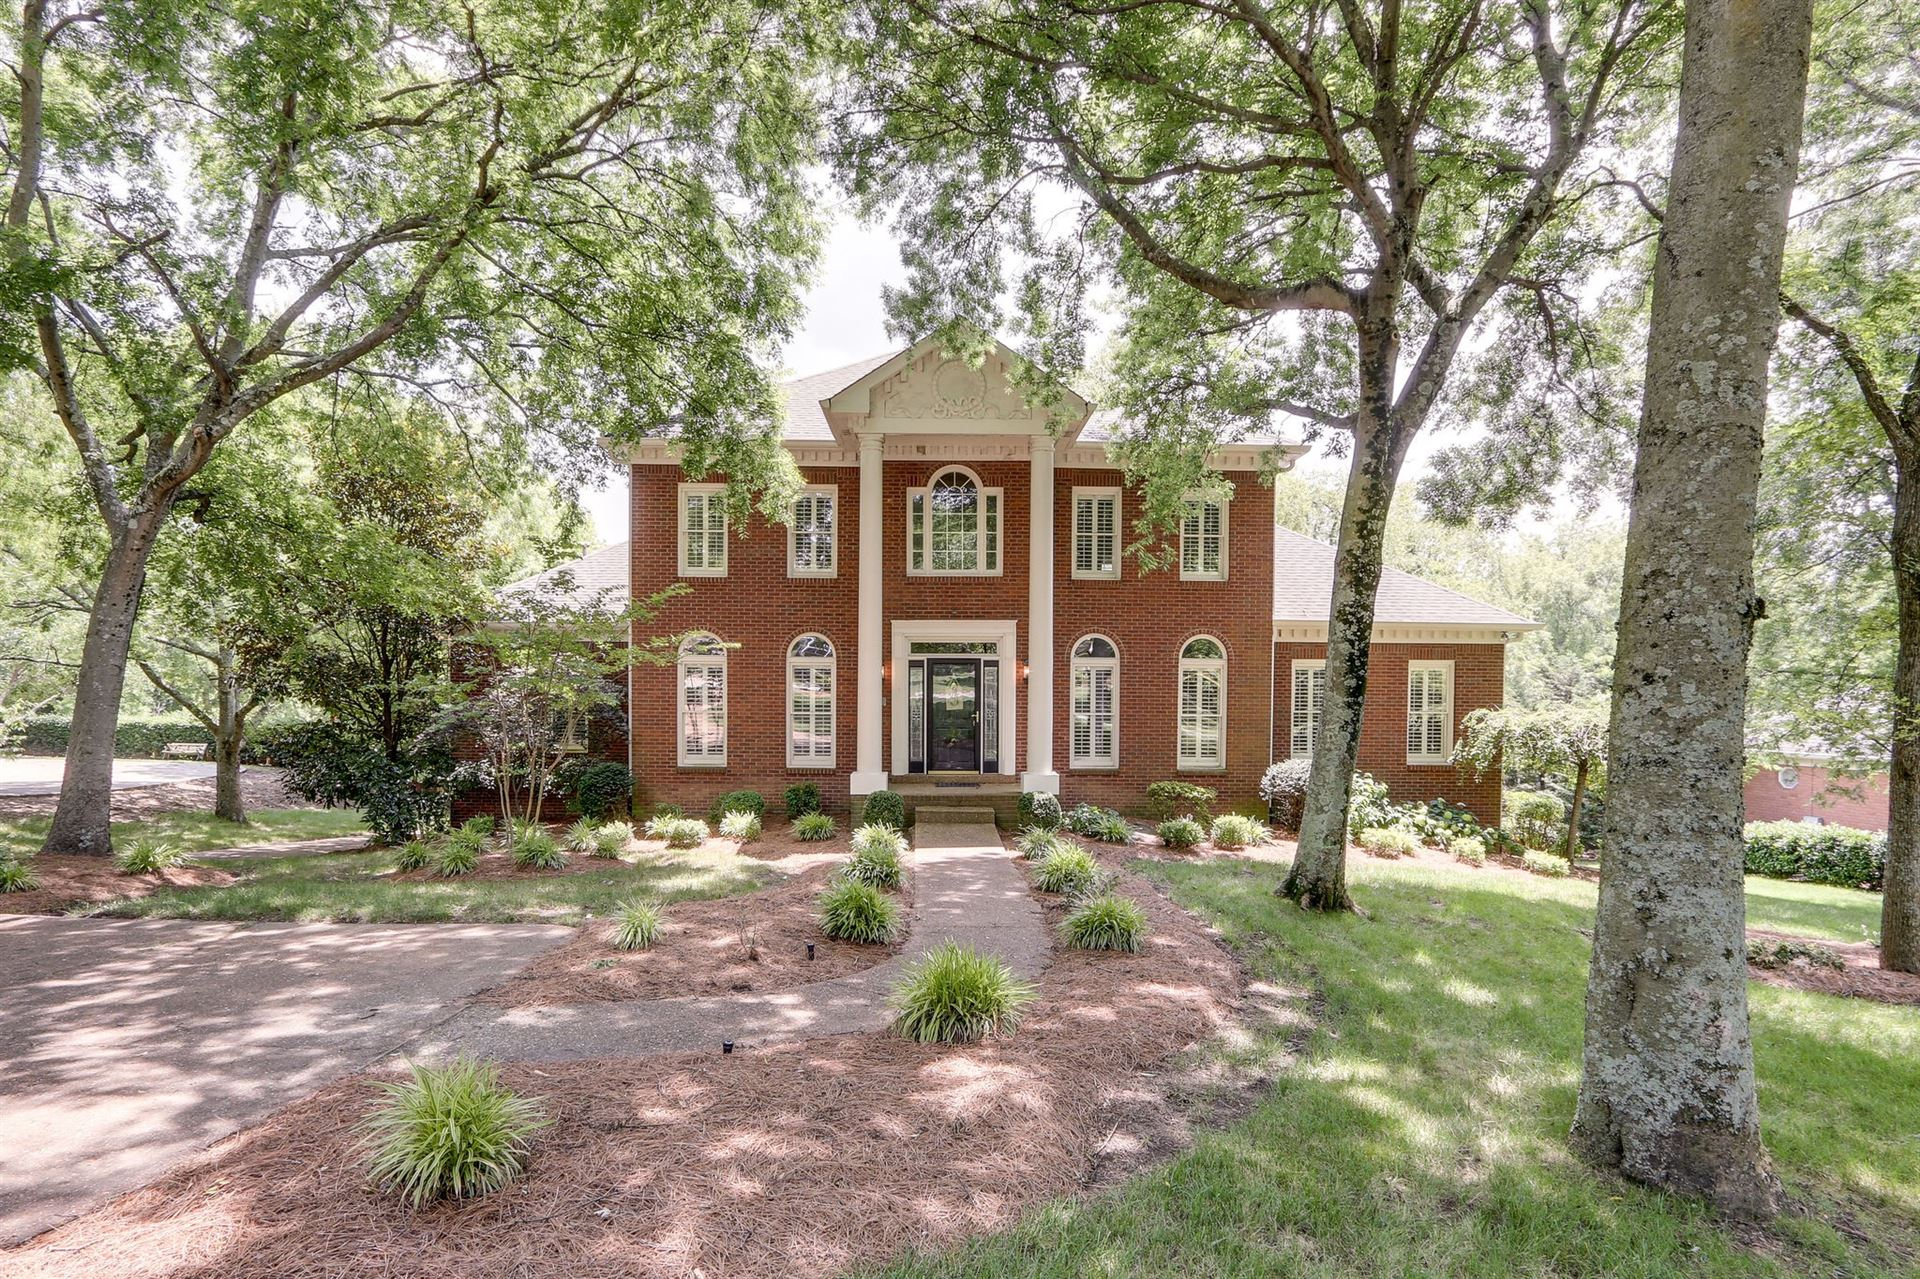 Photo of 9123 Brentmeade Blvd, Brentwood, TN 37027 (MLS # 2121964)